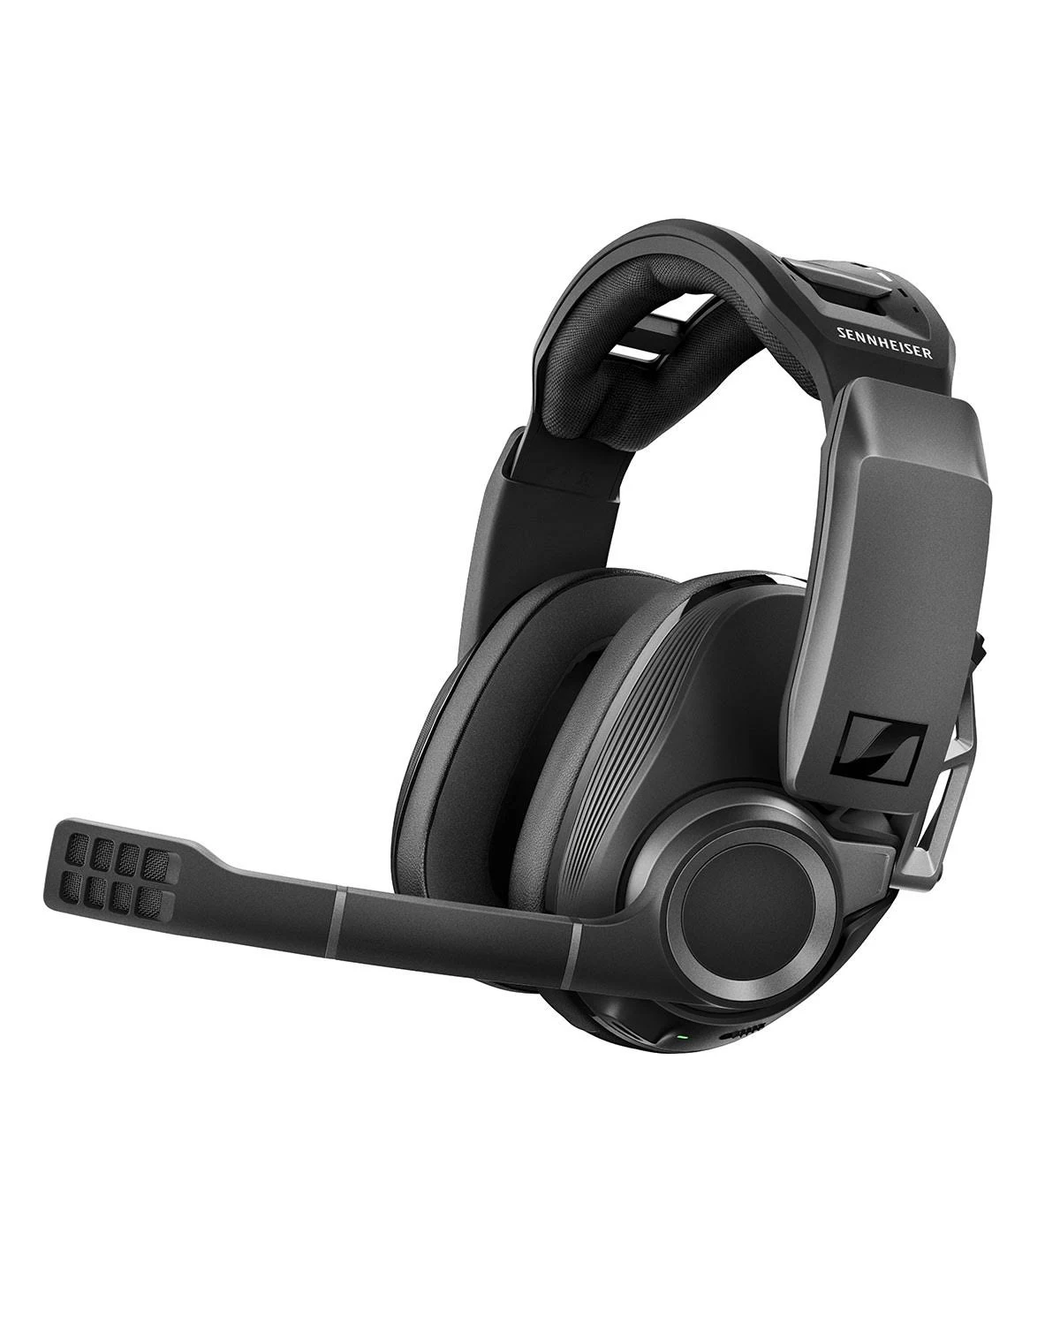 Sennheiser GSP 670 Over the Ear Bluetooth Headset Black, NOB